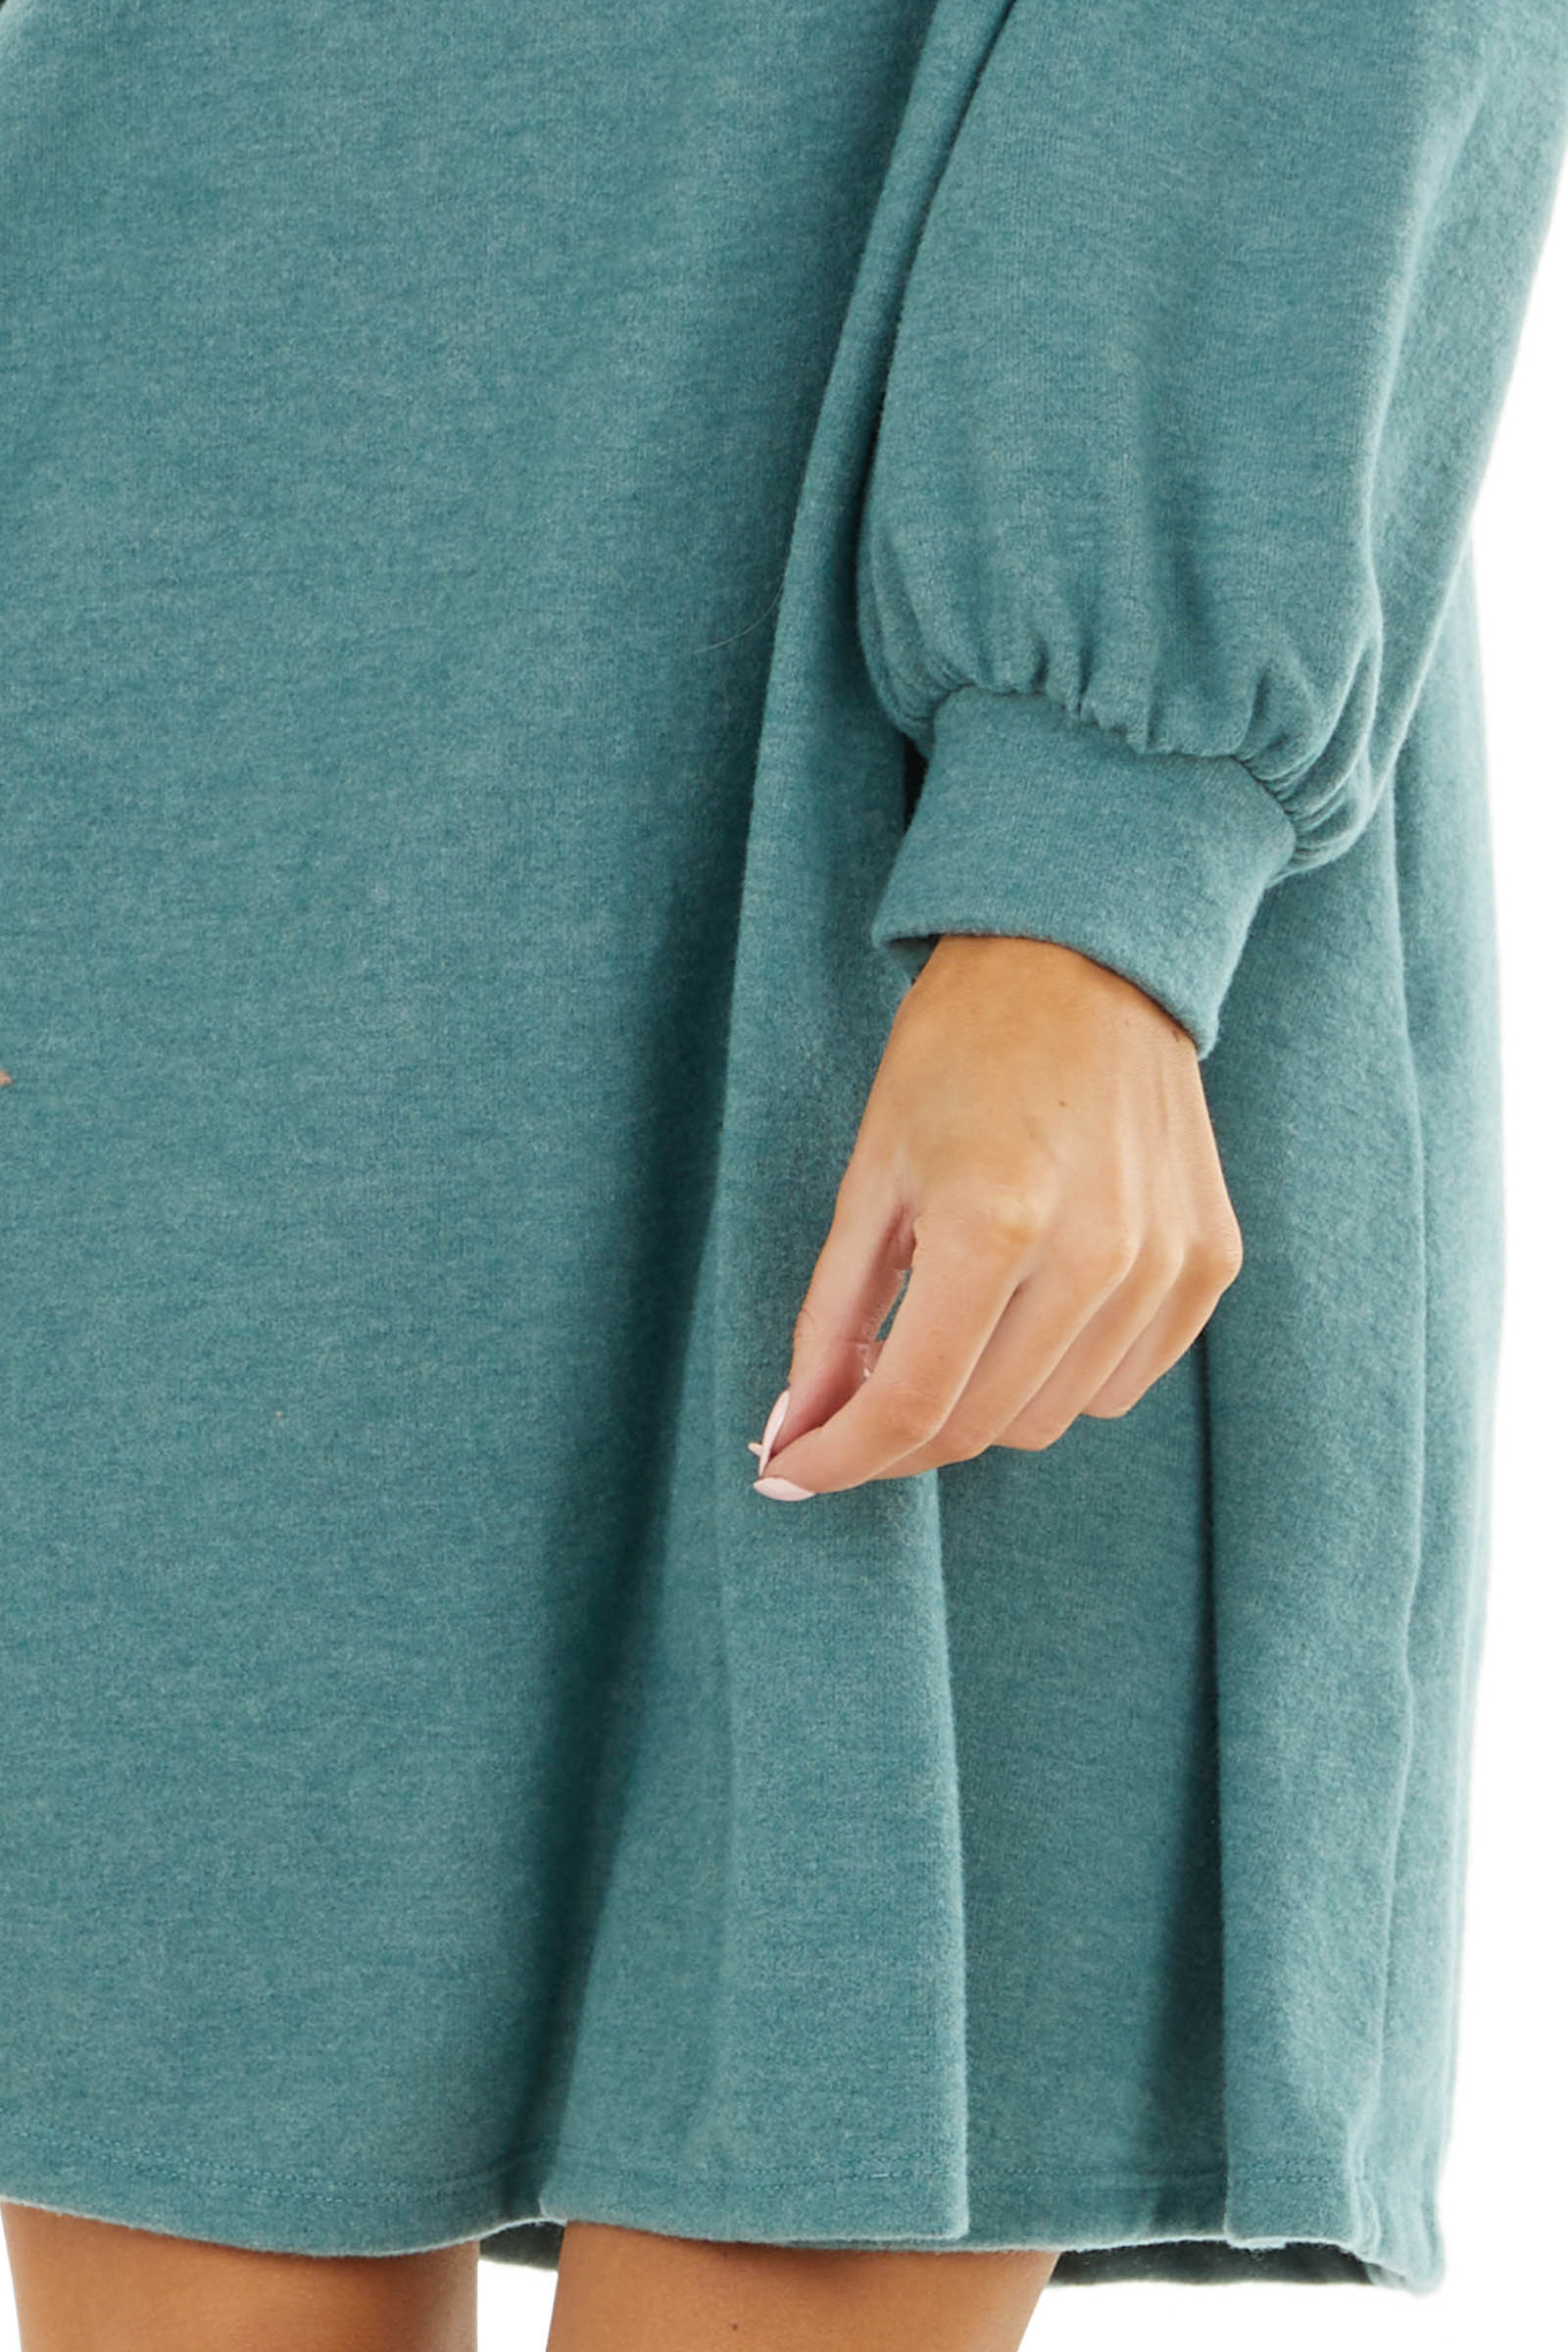 Pine Green Soft Knit Short Dress with Long Bubble Sleeve